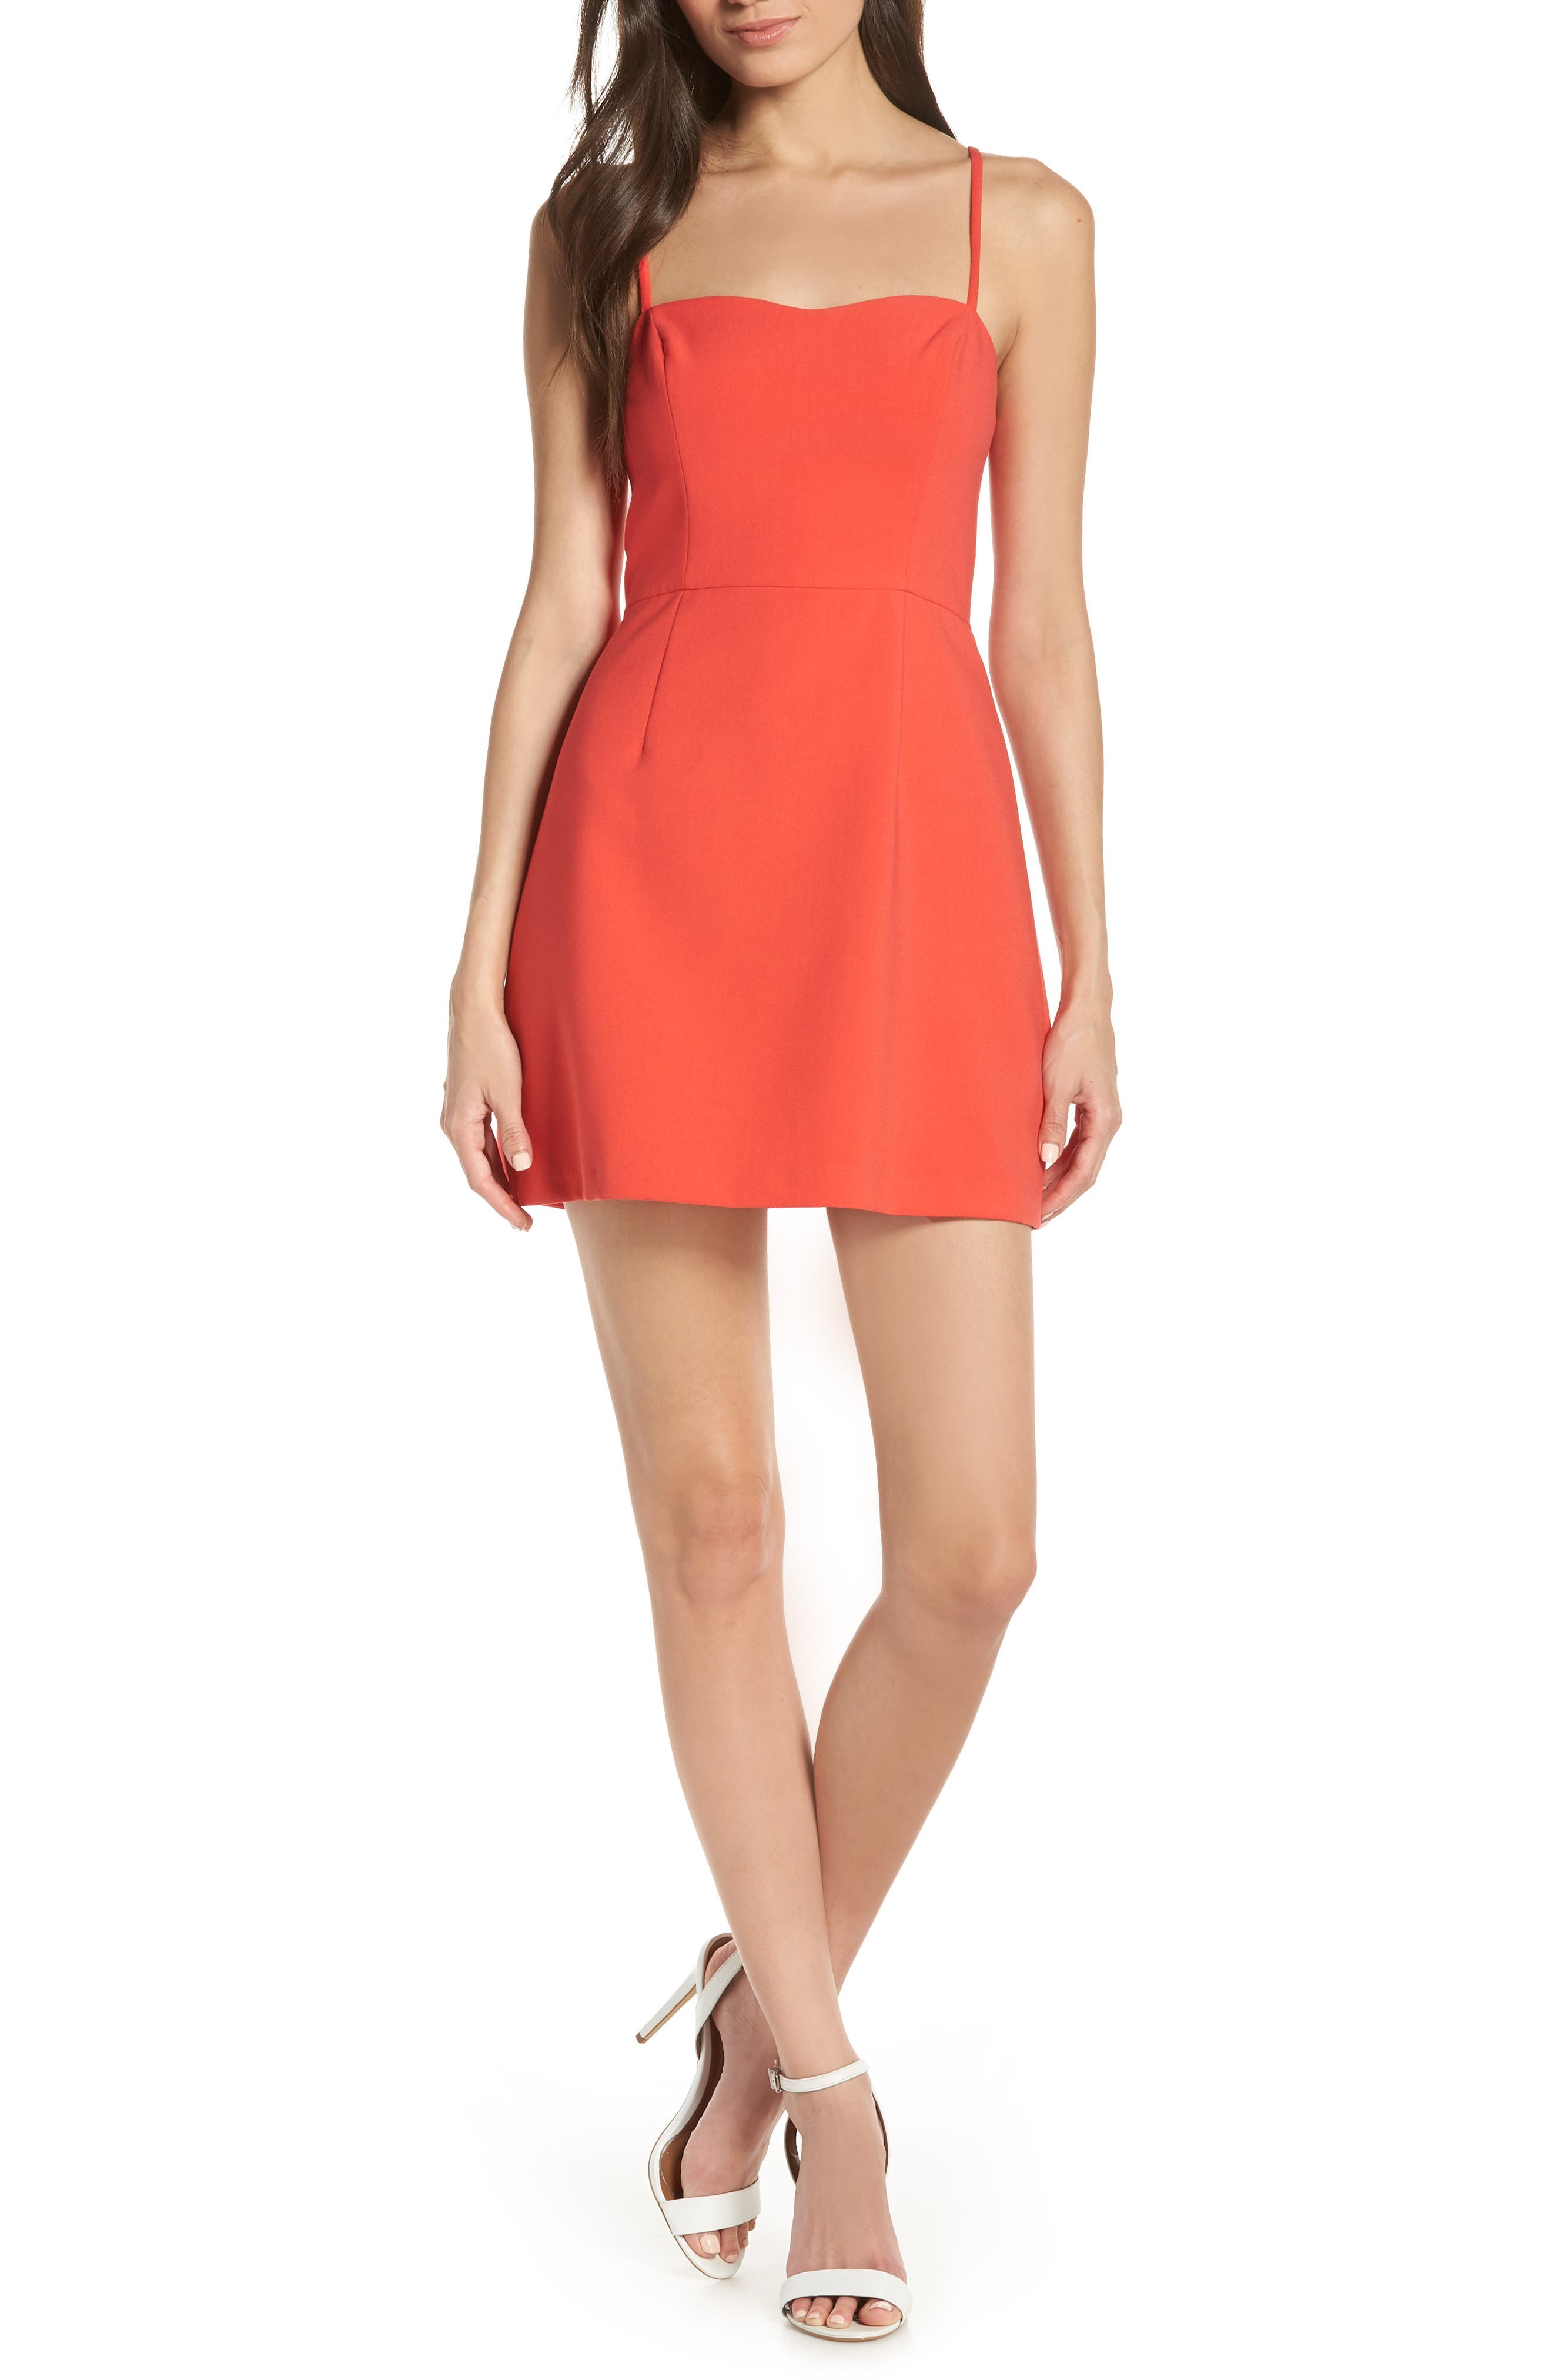 FRENCH CONNECTION Whisper Light Sweetheart Minidress, Main, color, FIRE CORAL